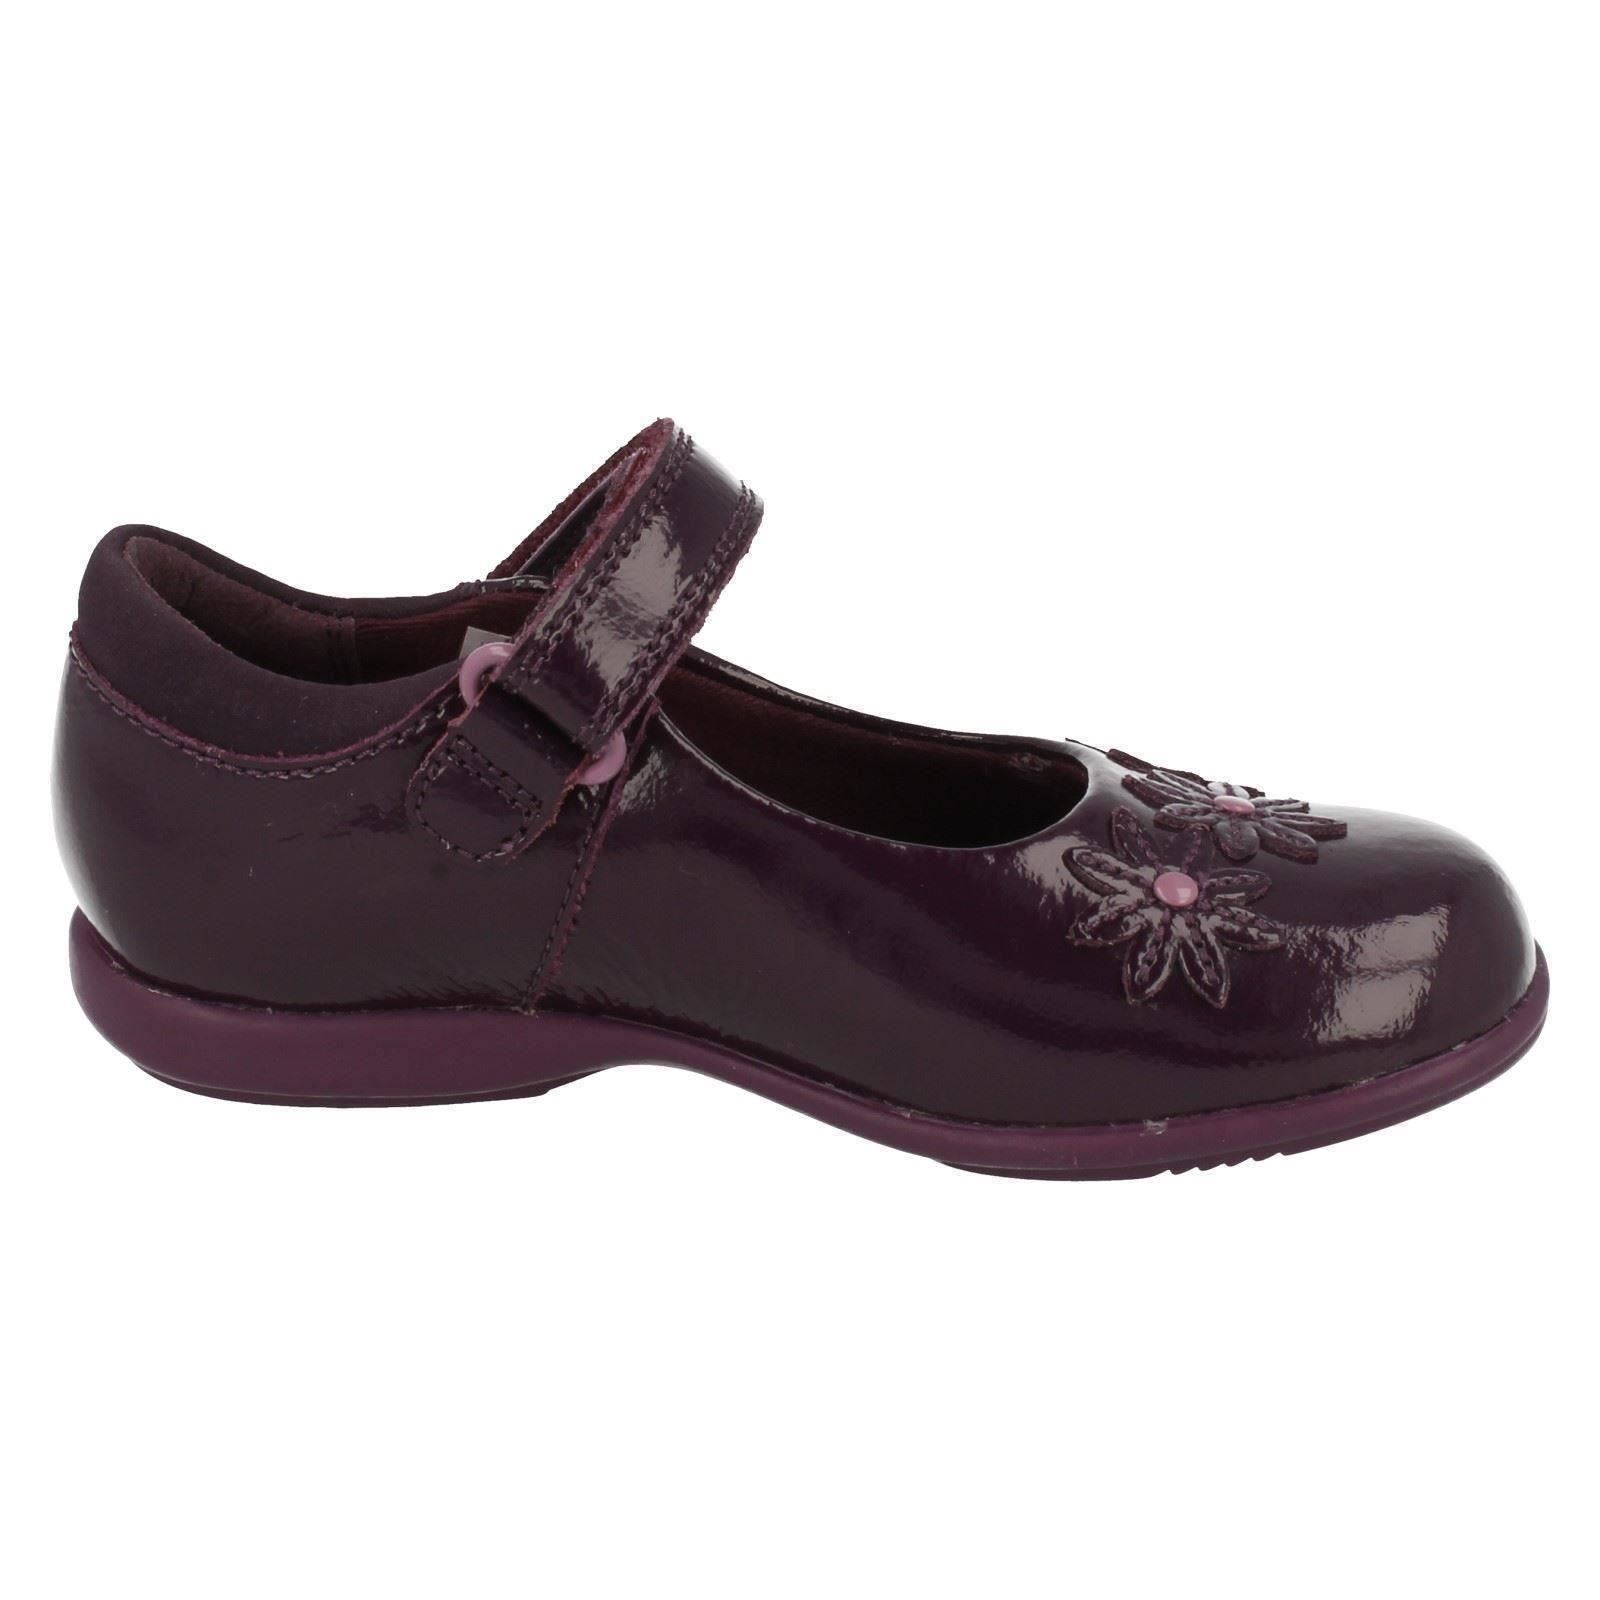 Trixi Beth Clarks Girls Smart Casual Shoes with Lights